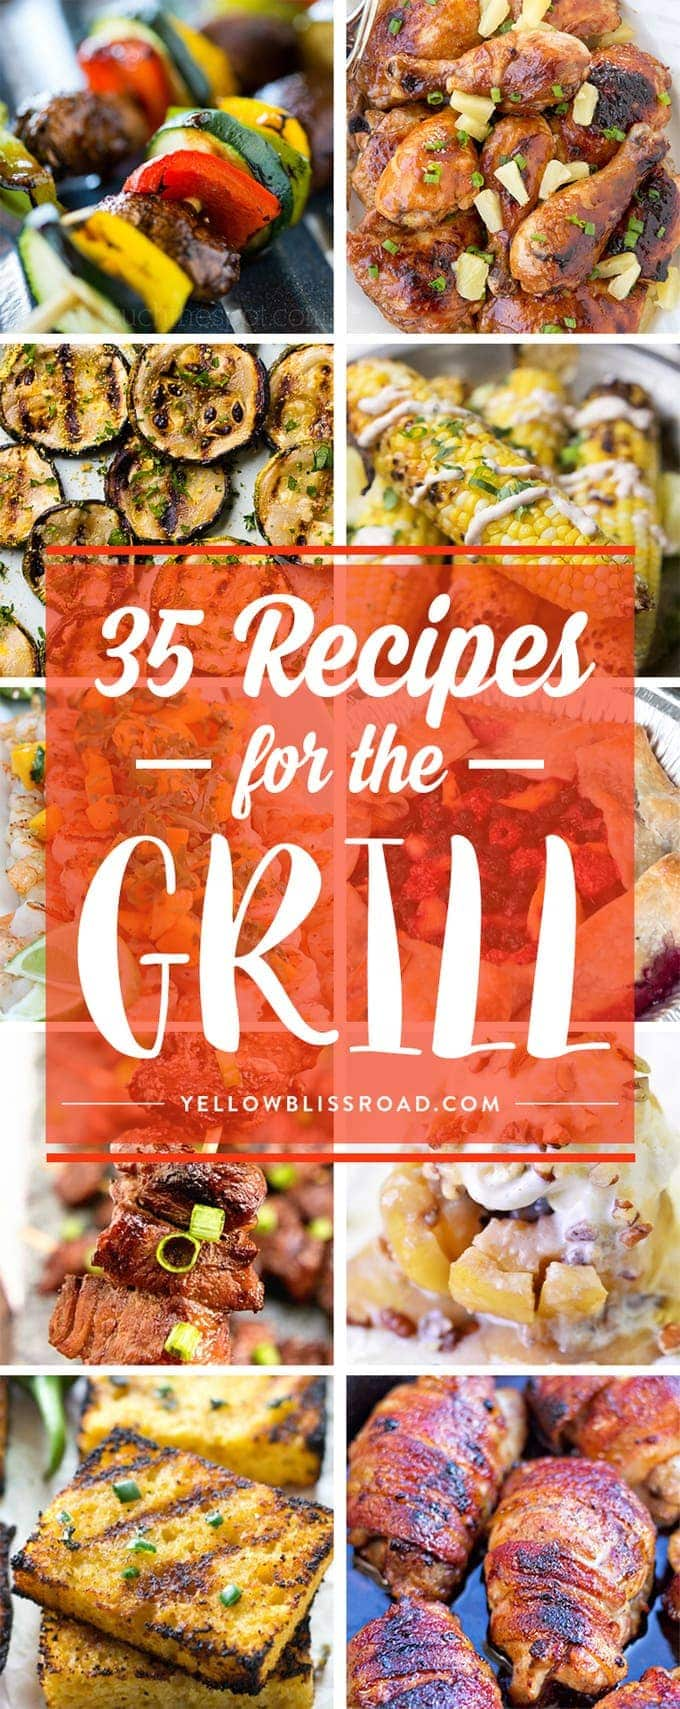 35 Recipes for the Grill - From Backyard Barbecues to Block Parties, these top recipes you can throw on the grill will win the day!